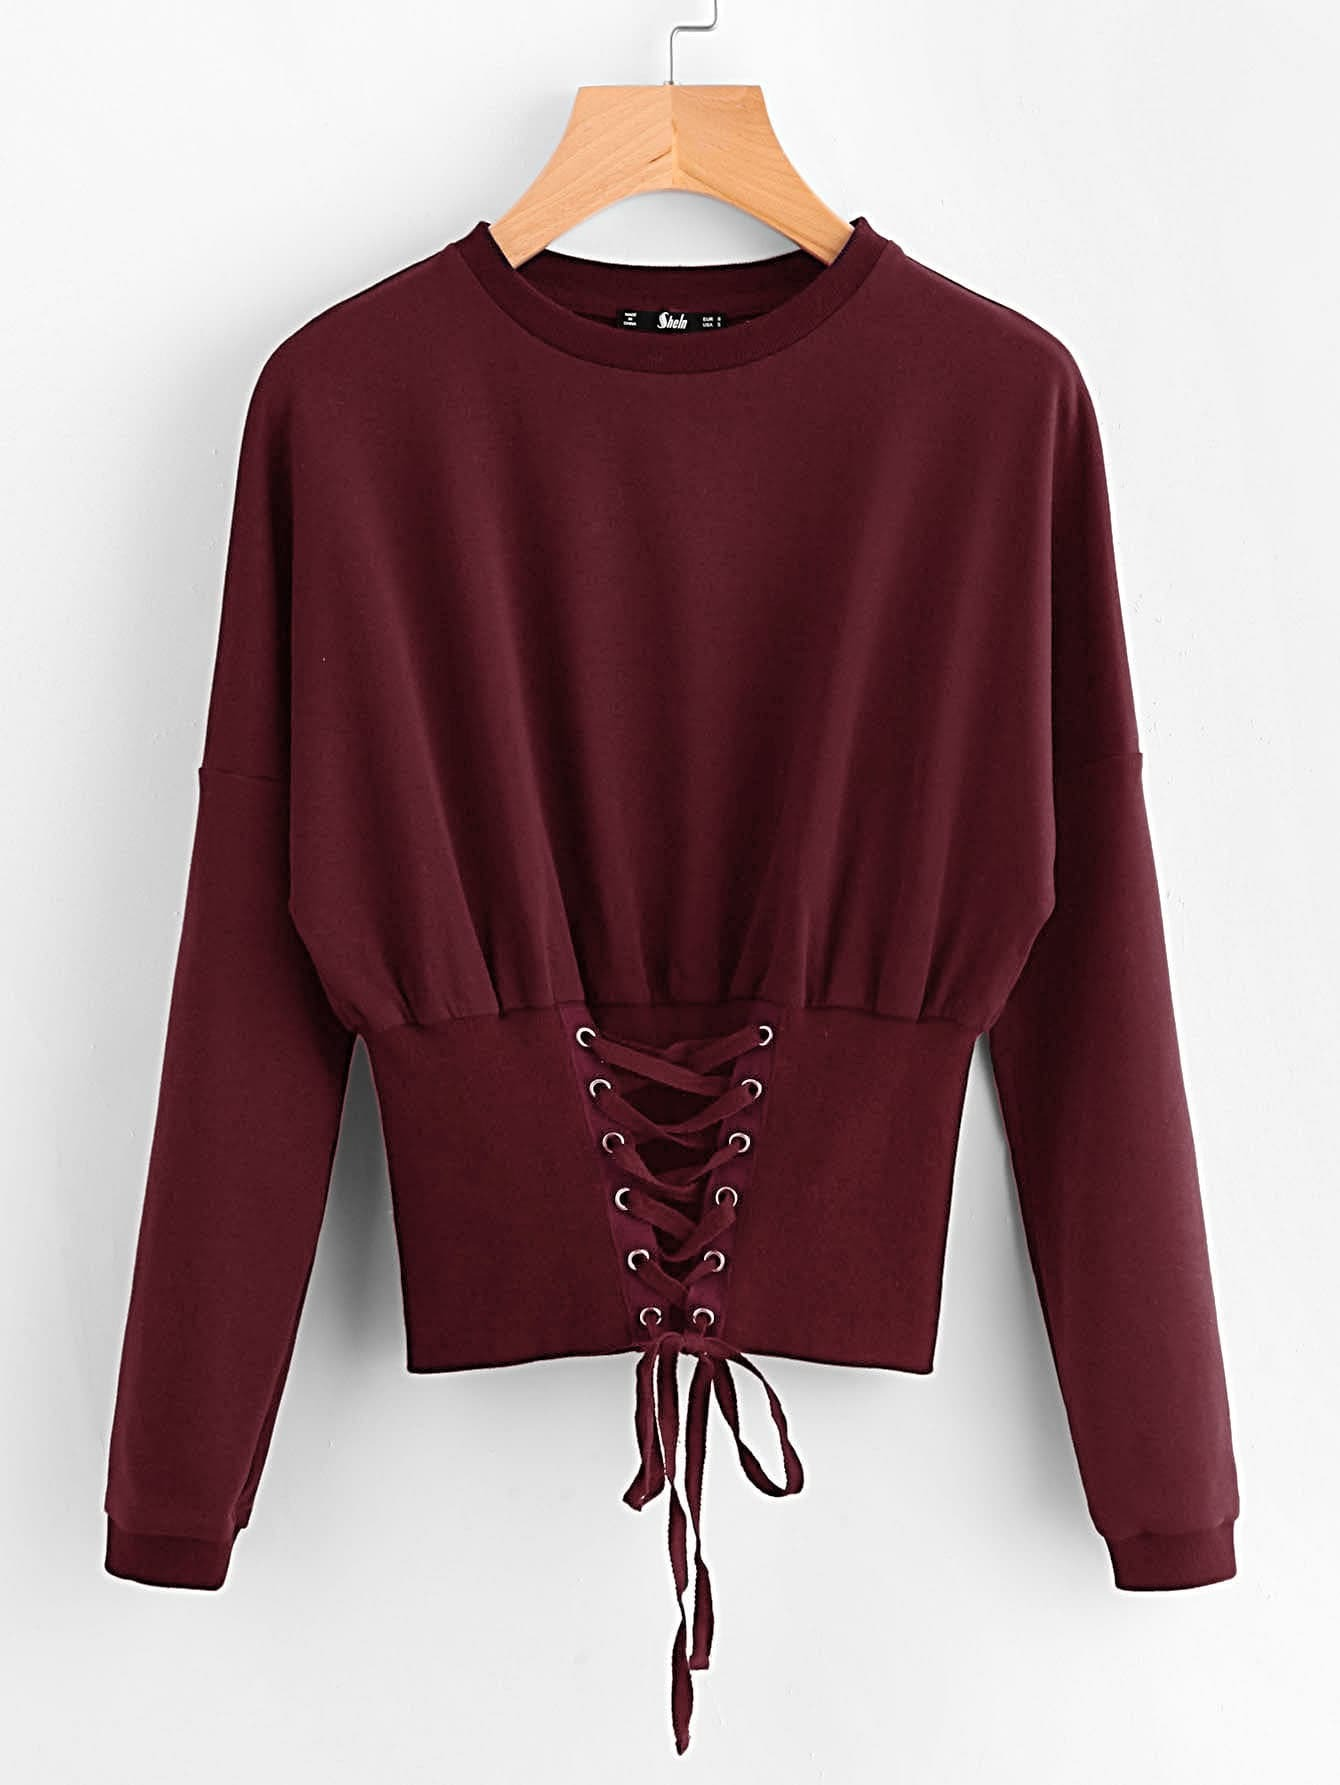 Grommet Lace Up Wide Hem Sweatshirt